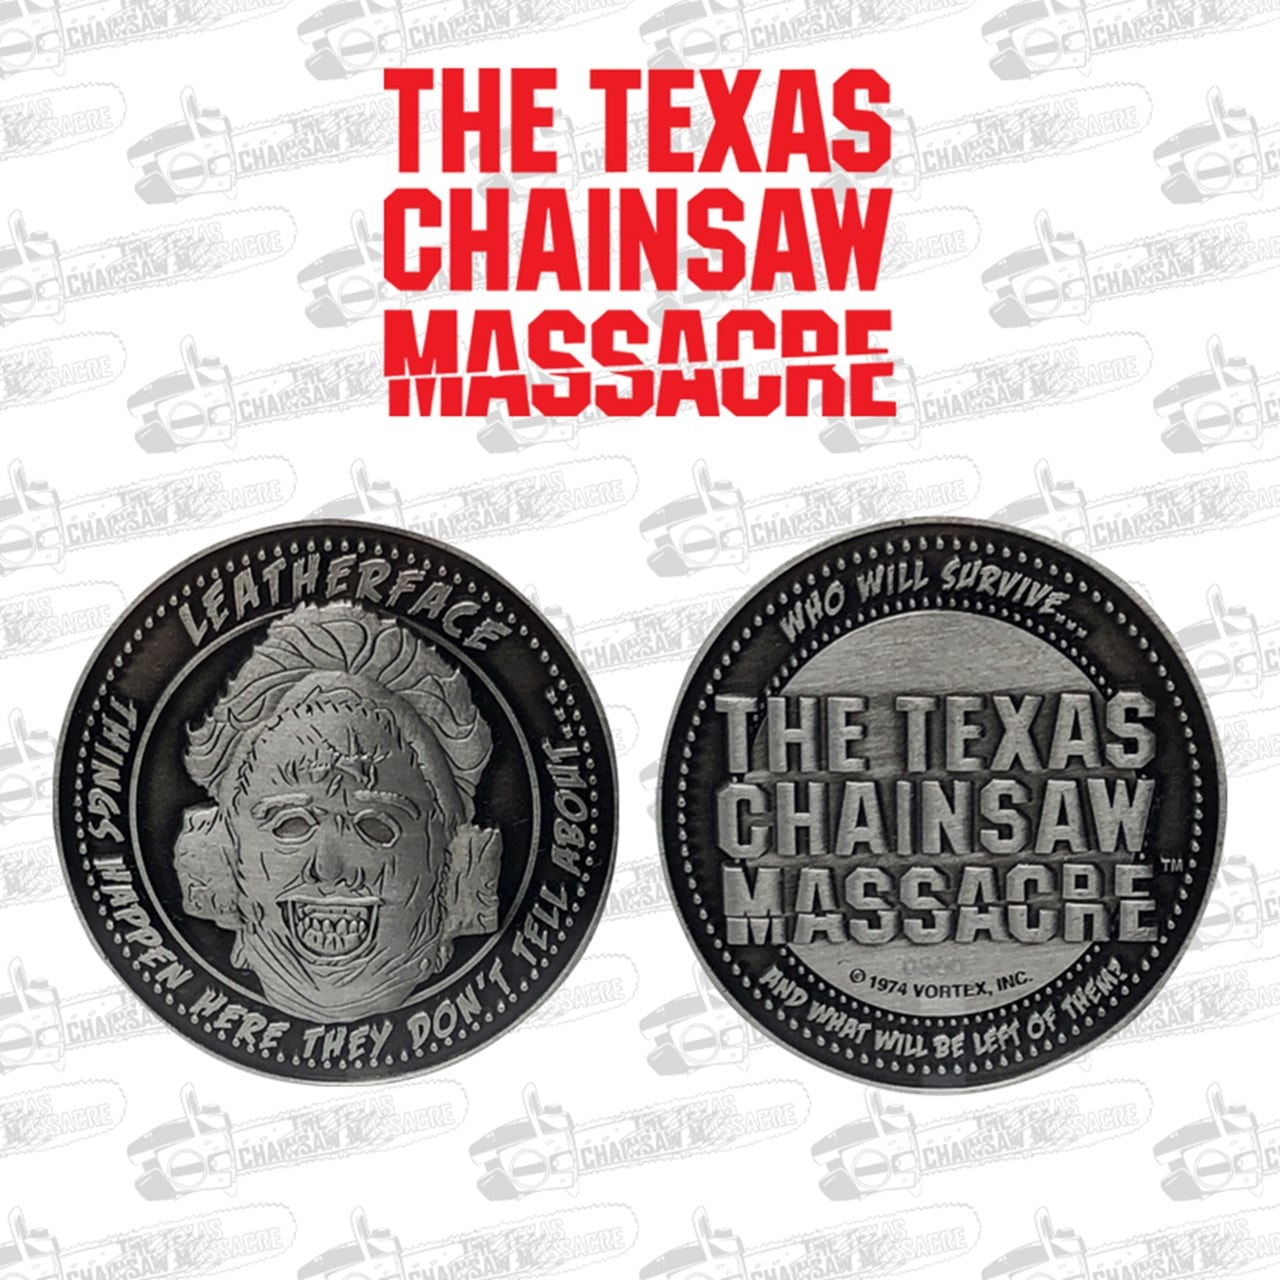 Texas Chainsaw Massacre: Limited Edition Coin - 2